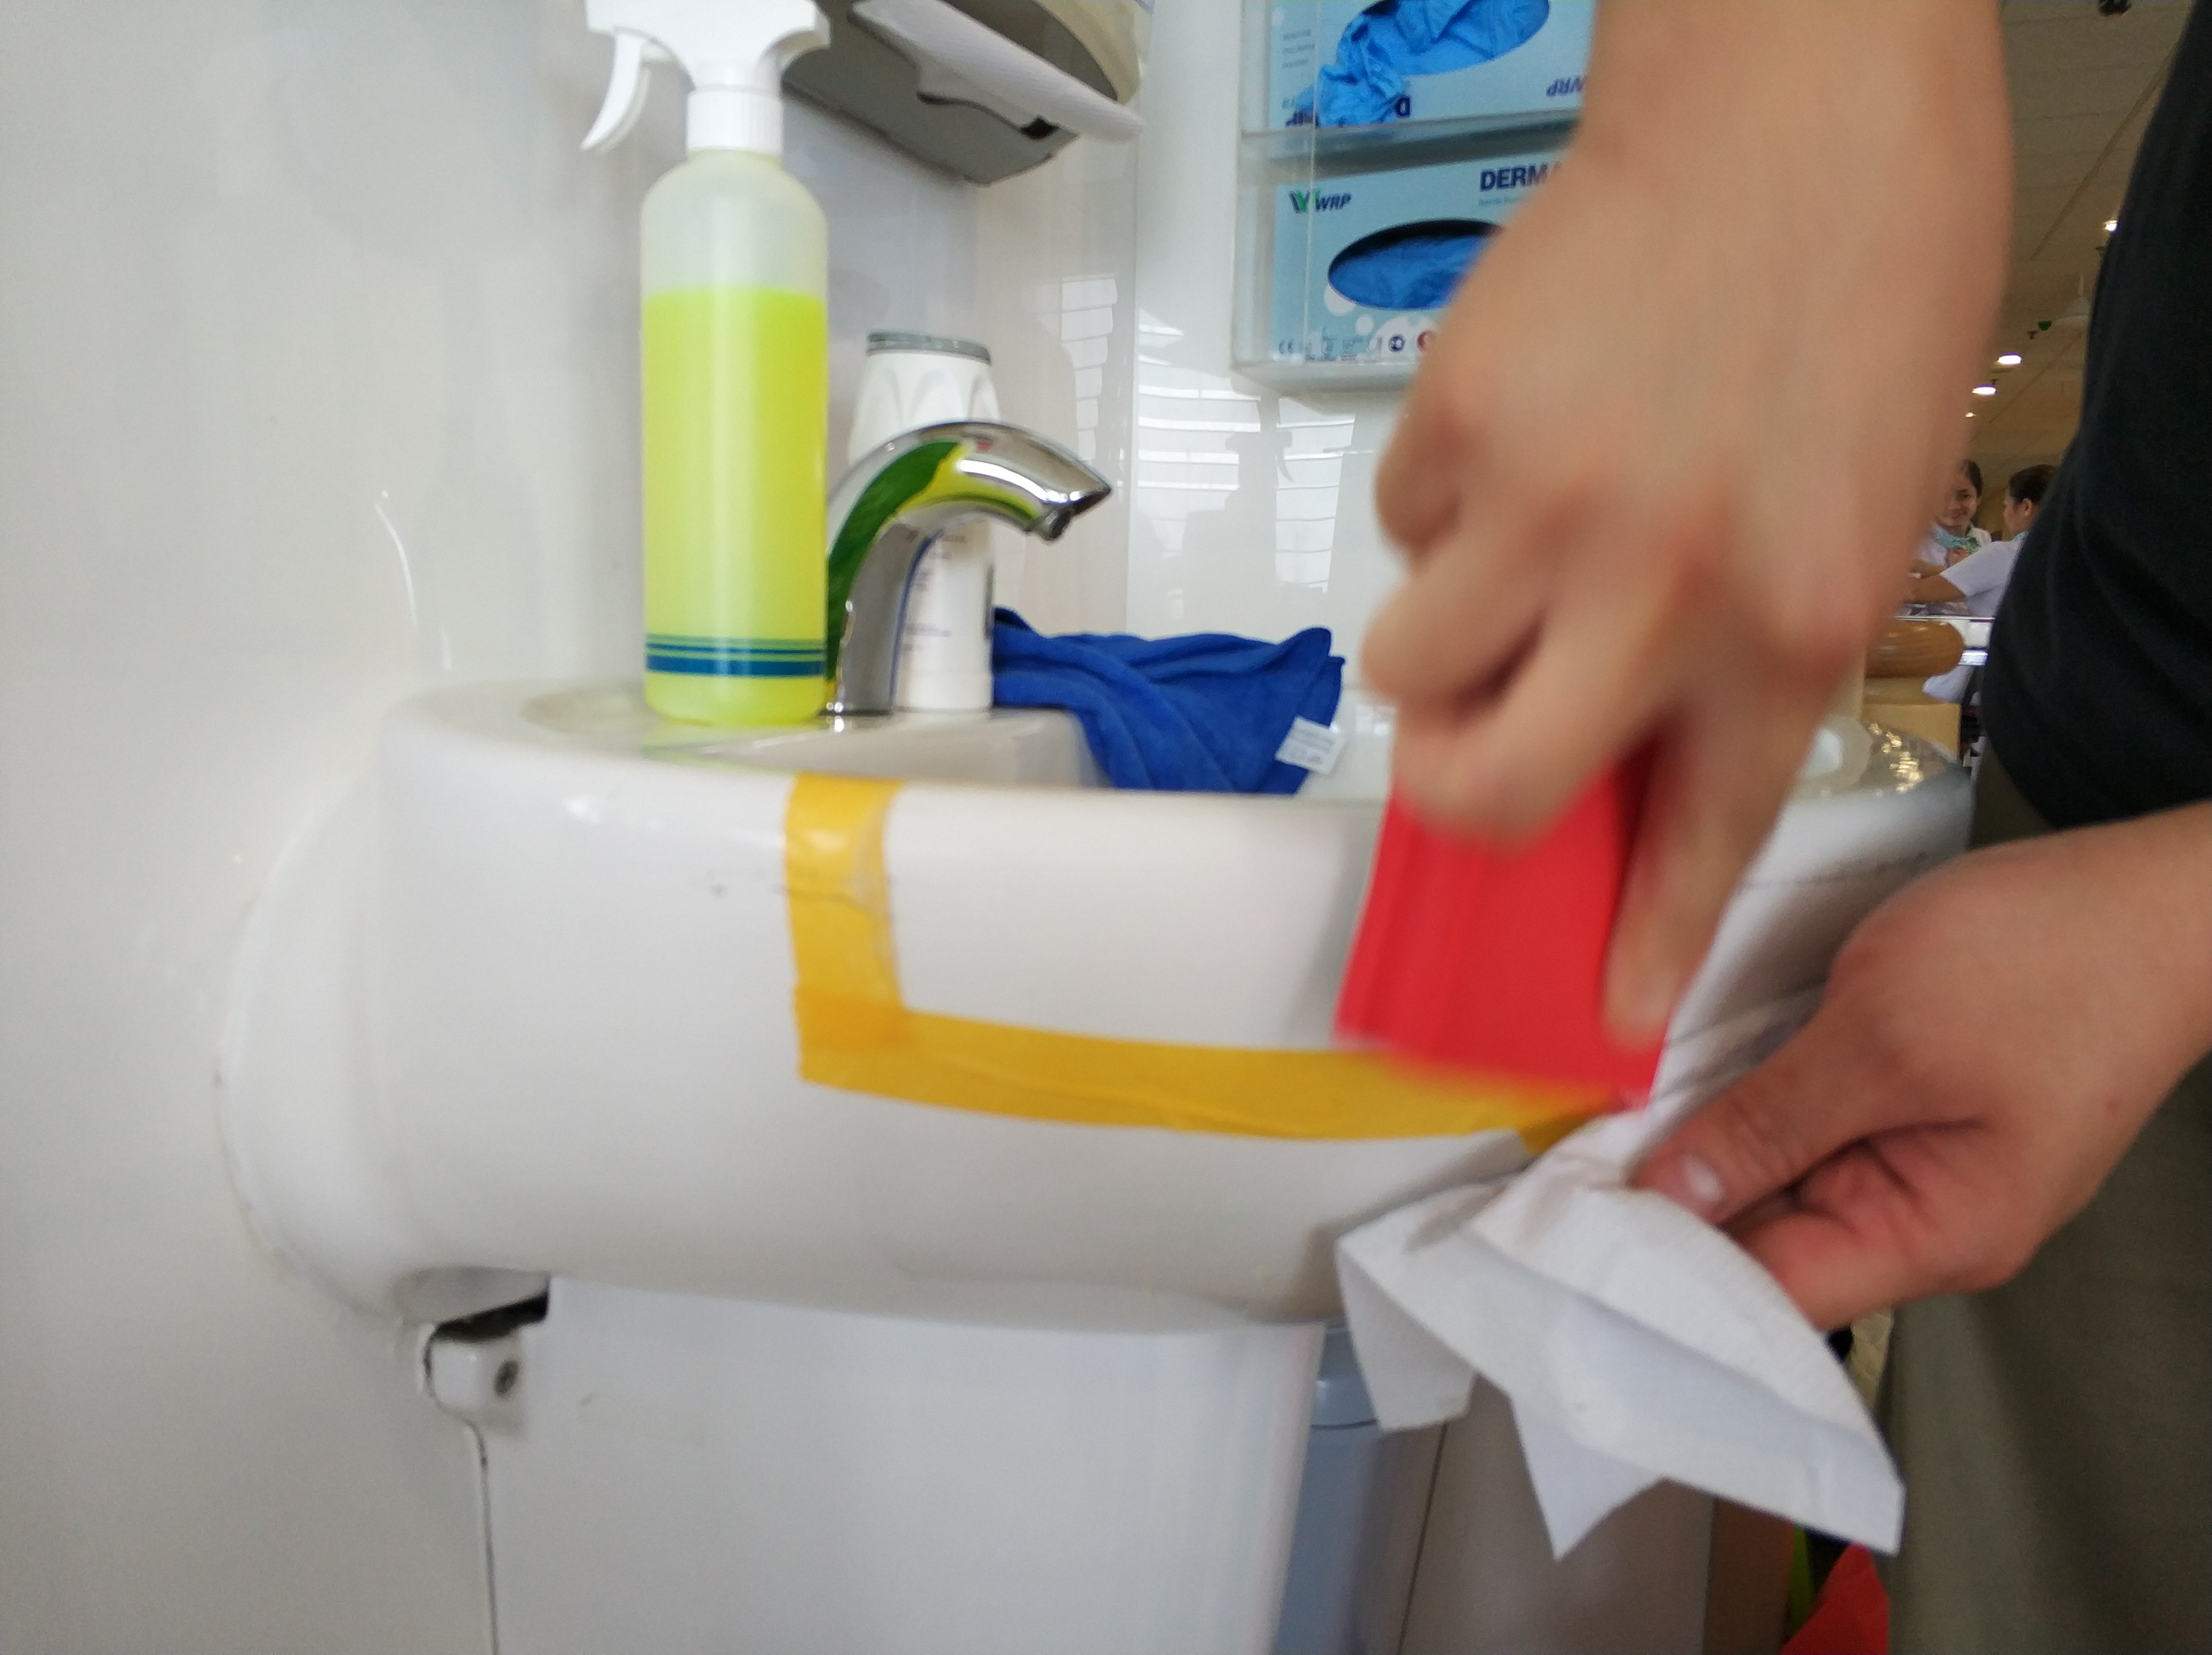 weFix SG project at Khoo Teck Puat Hospital for Basin stain removal